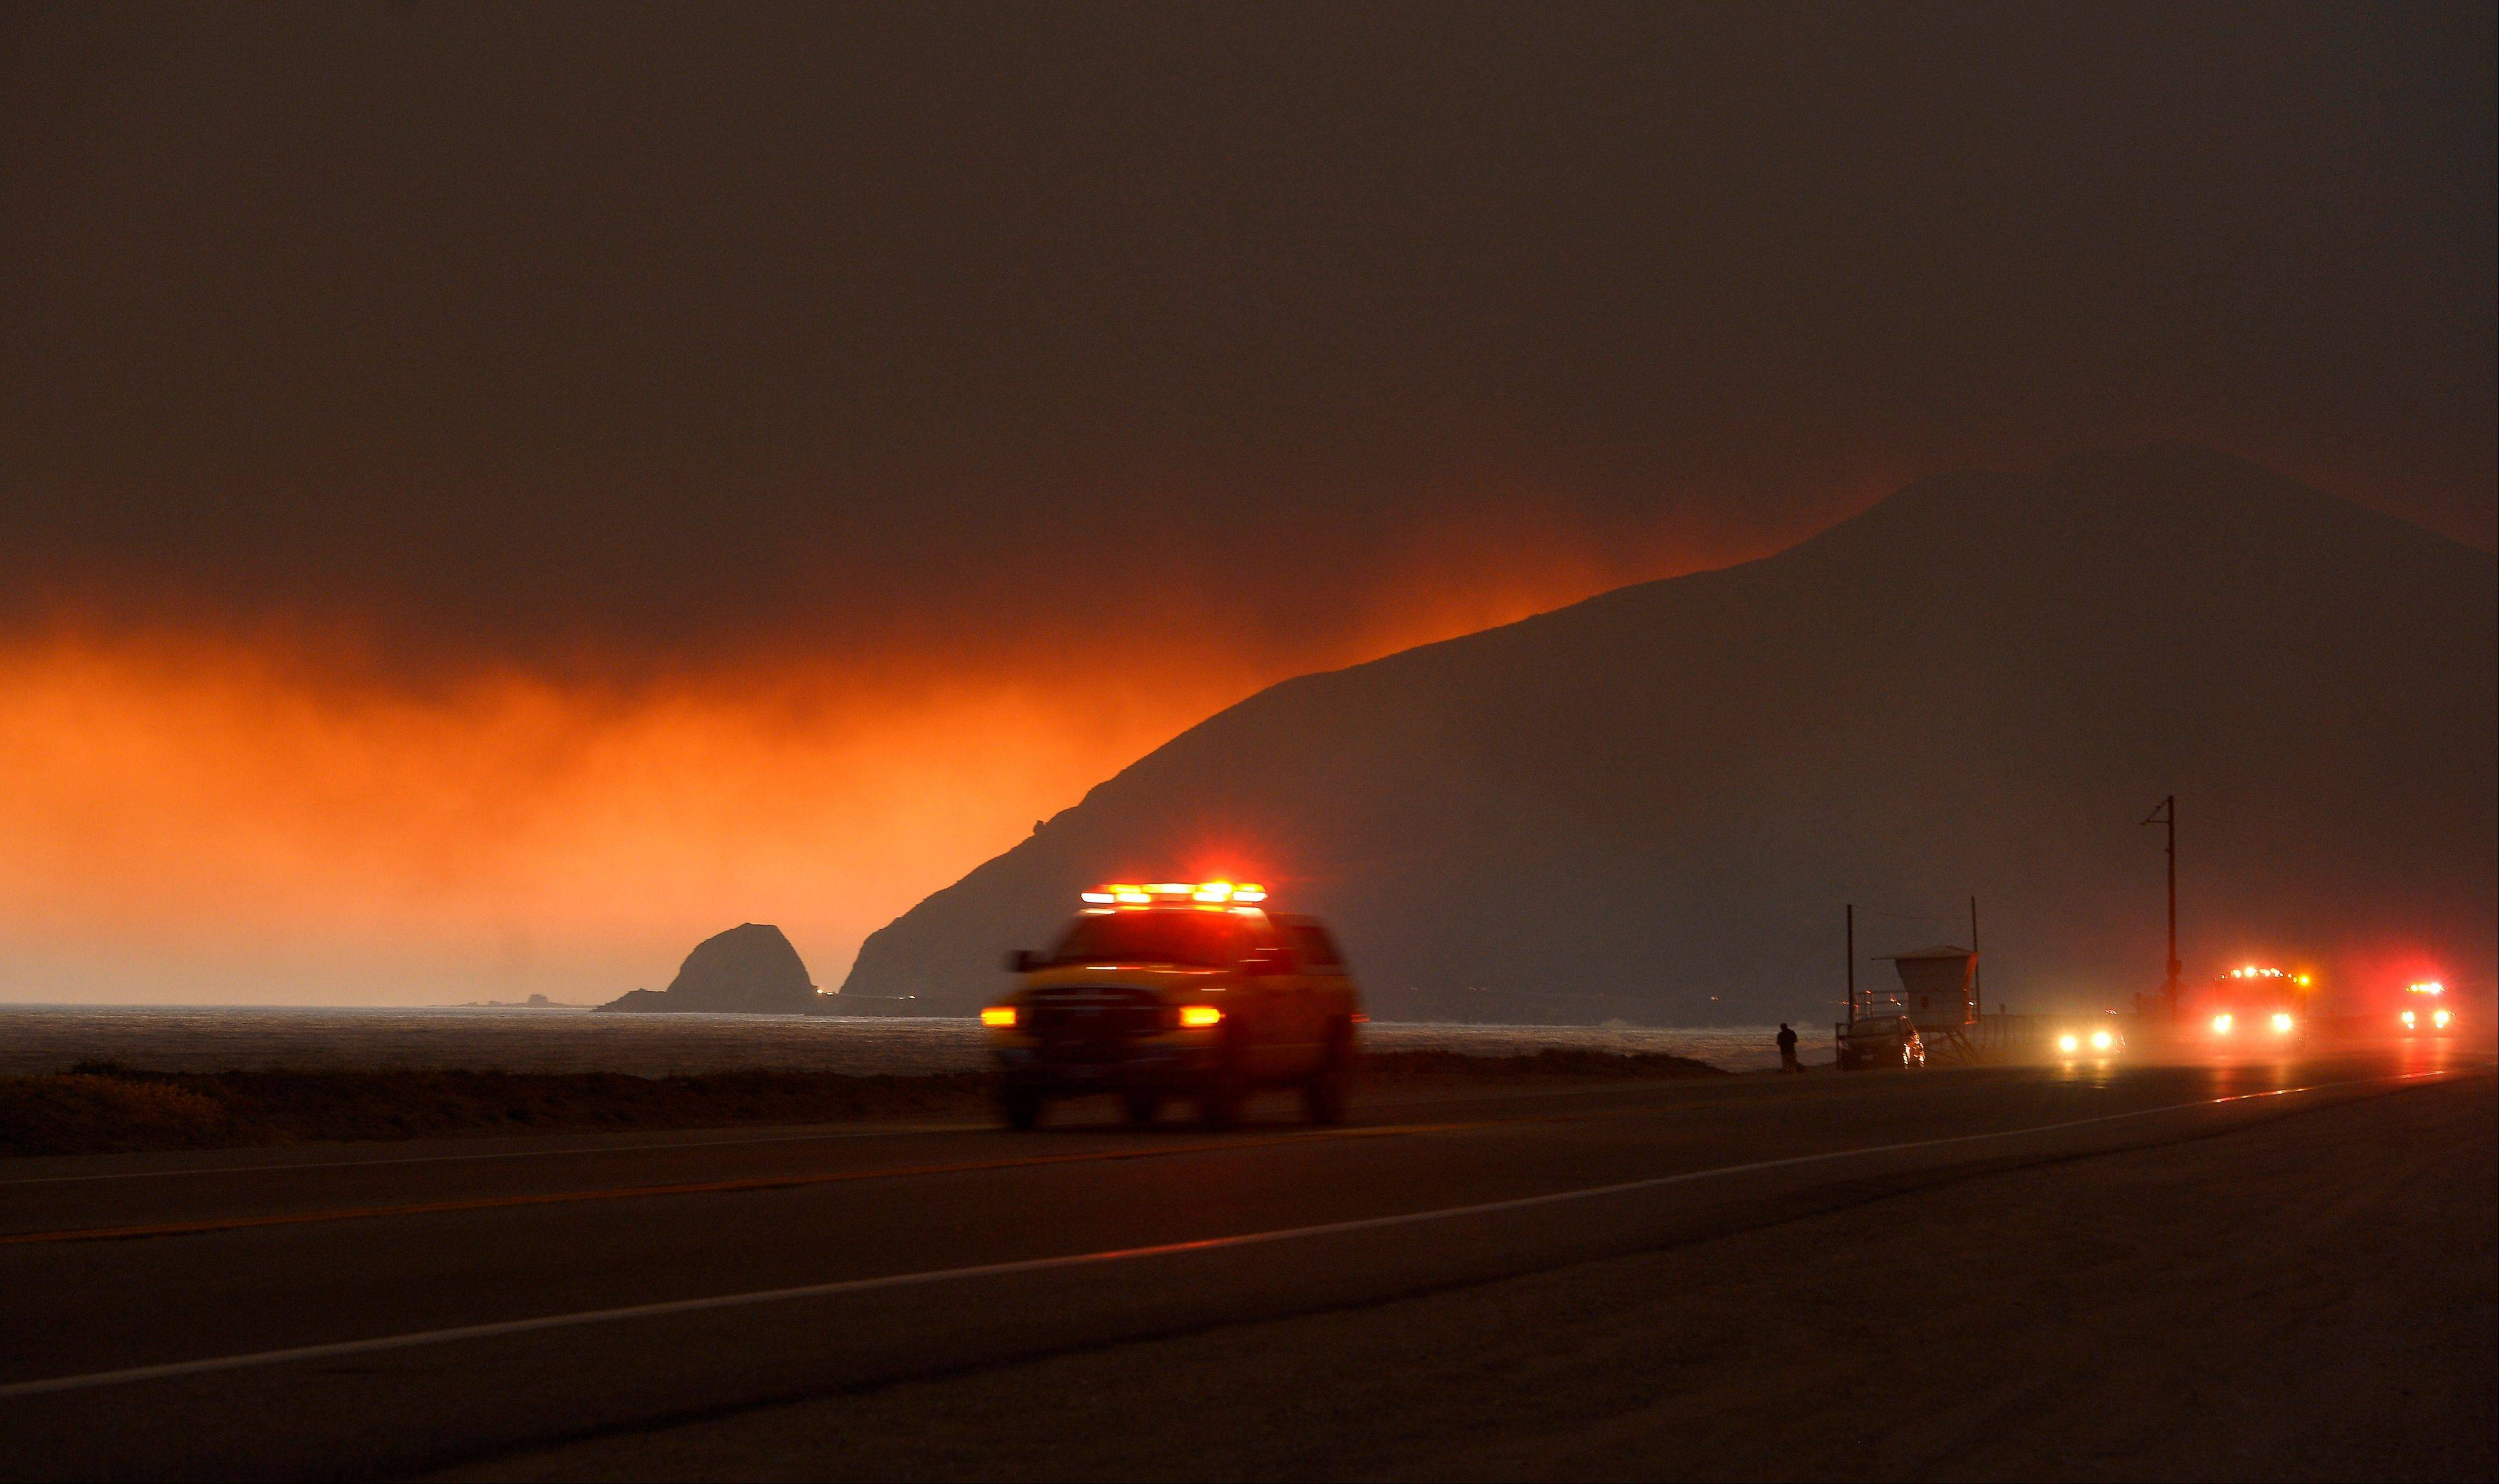 Fire department personnel drive along Pacific Coast Highway near Point Mugu as a thick layer of smoke sits overhead during a wildfire that burned several thousand acres, Thursday, May 2, 2013, in Ventura County, Calif.